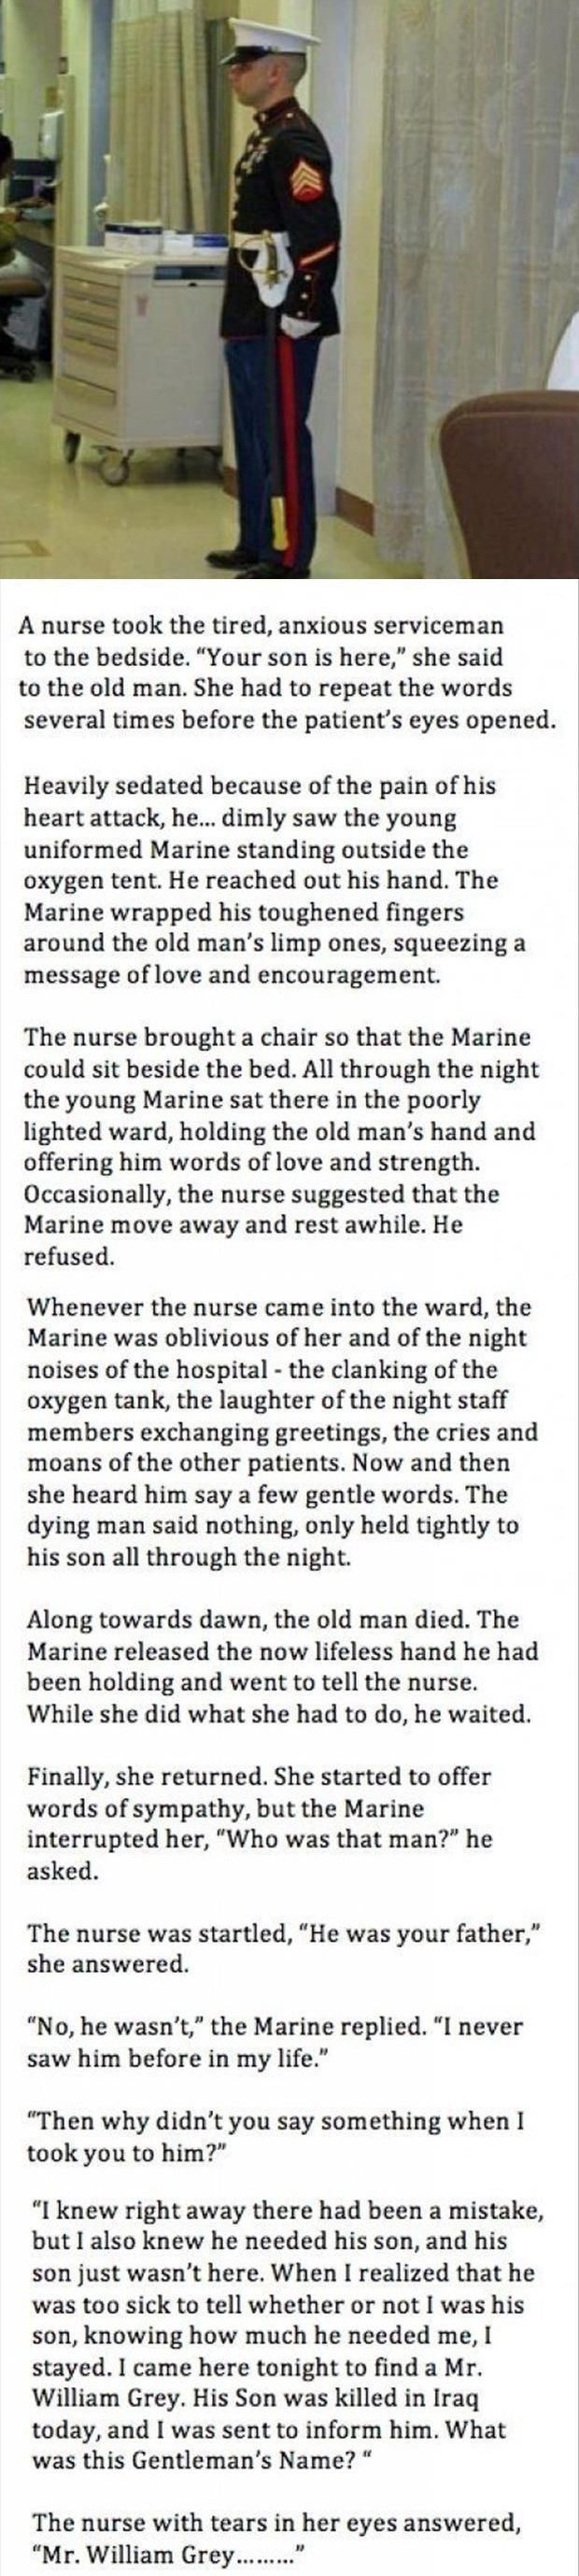 Very sad but amazing all at the same time... I wish all people in this world could be as thoughtful as this man: